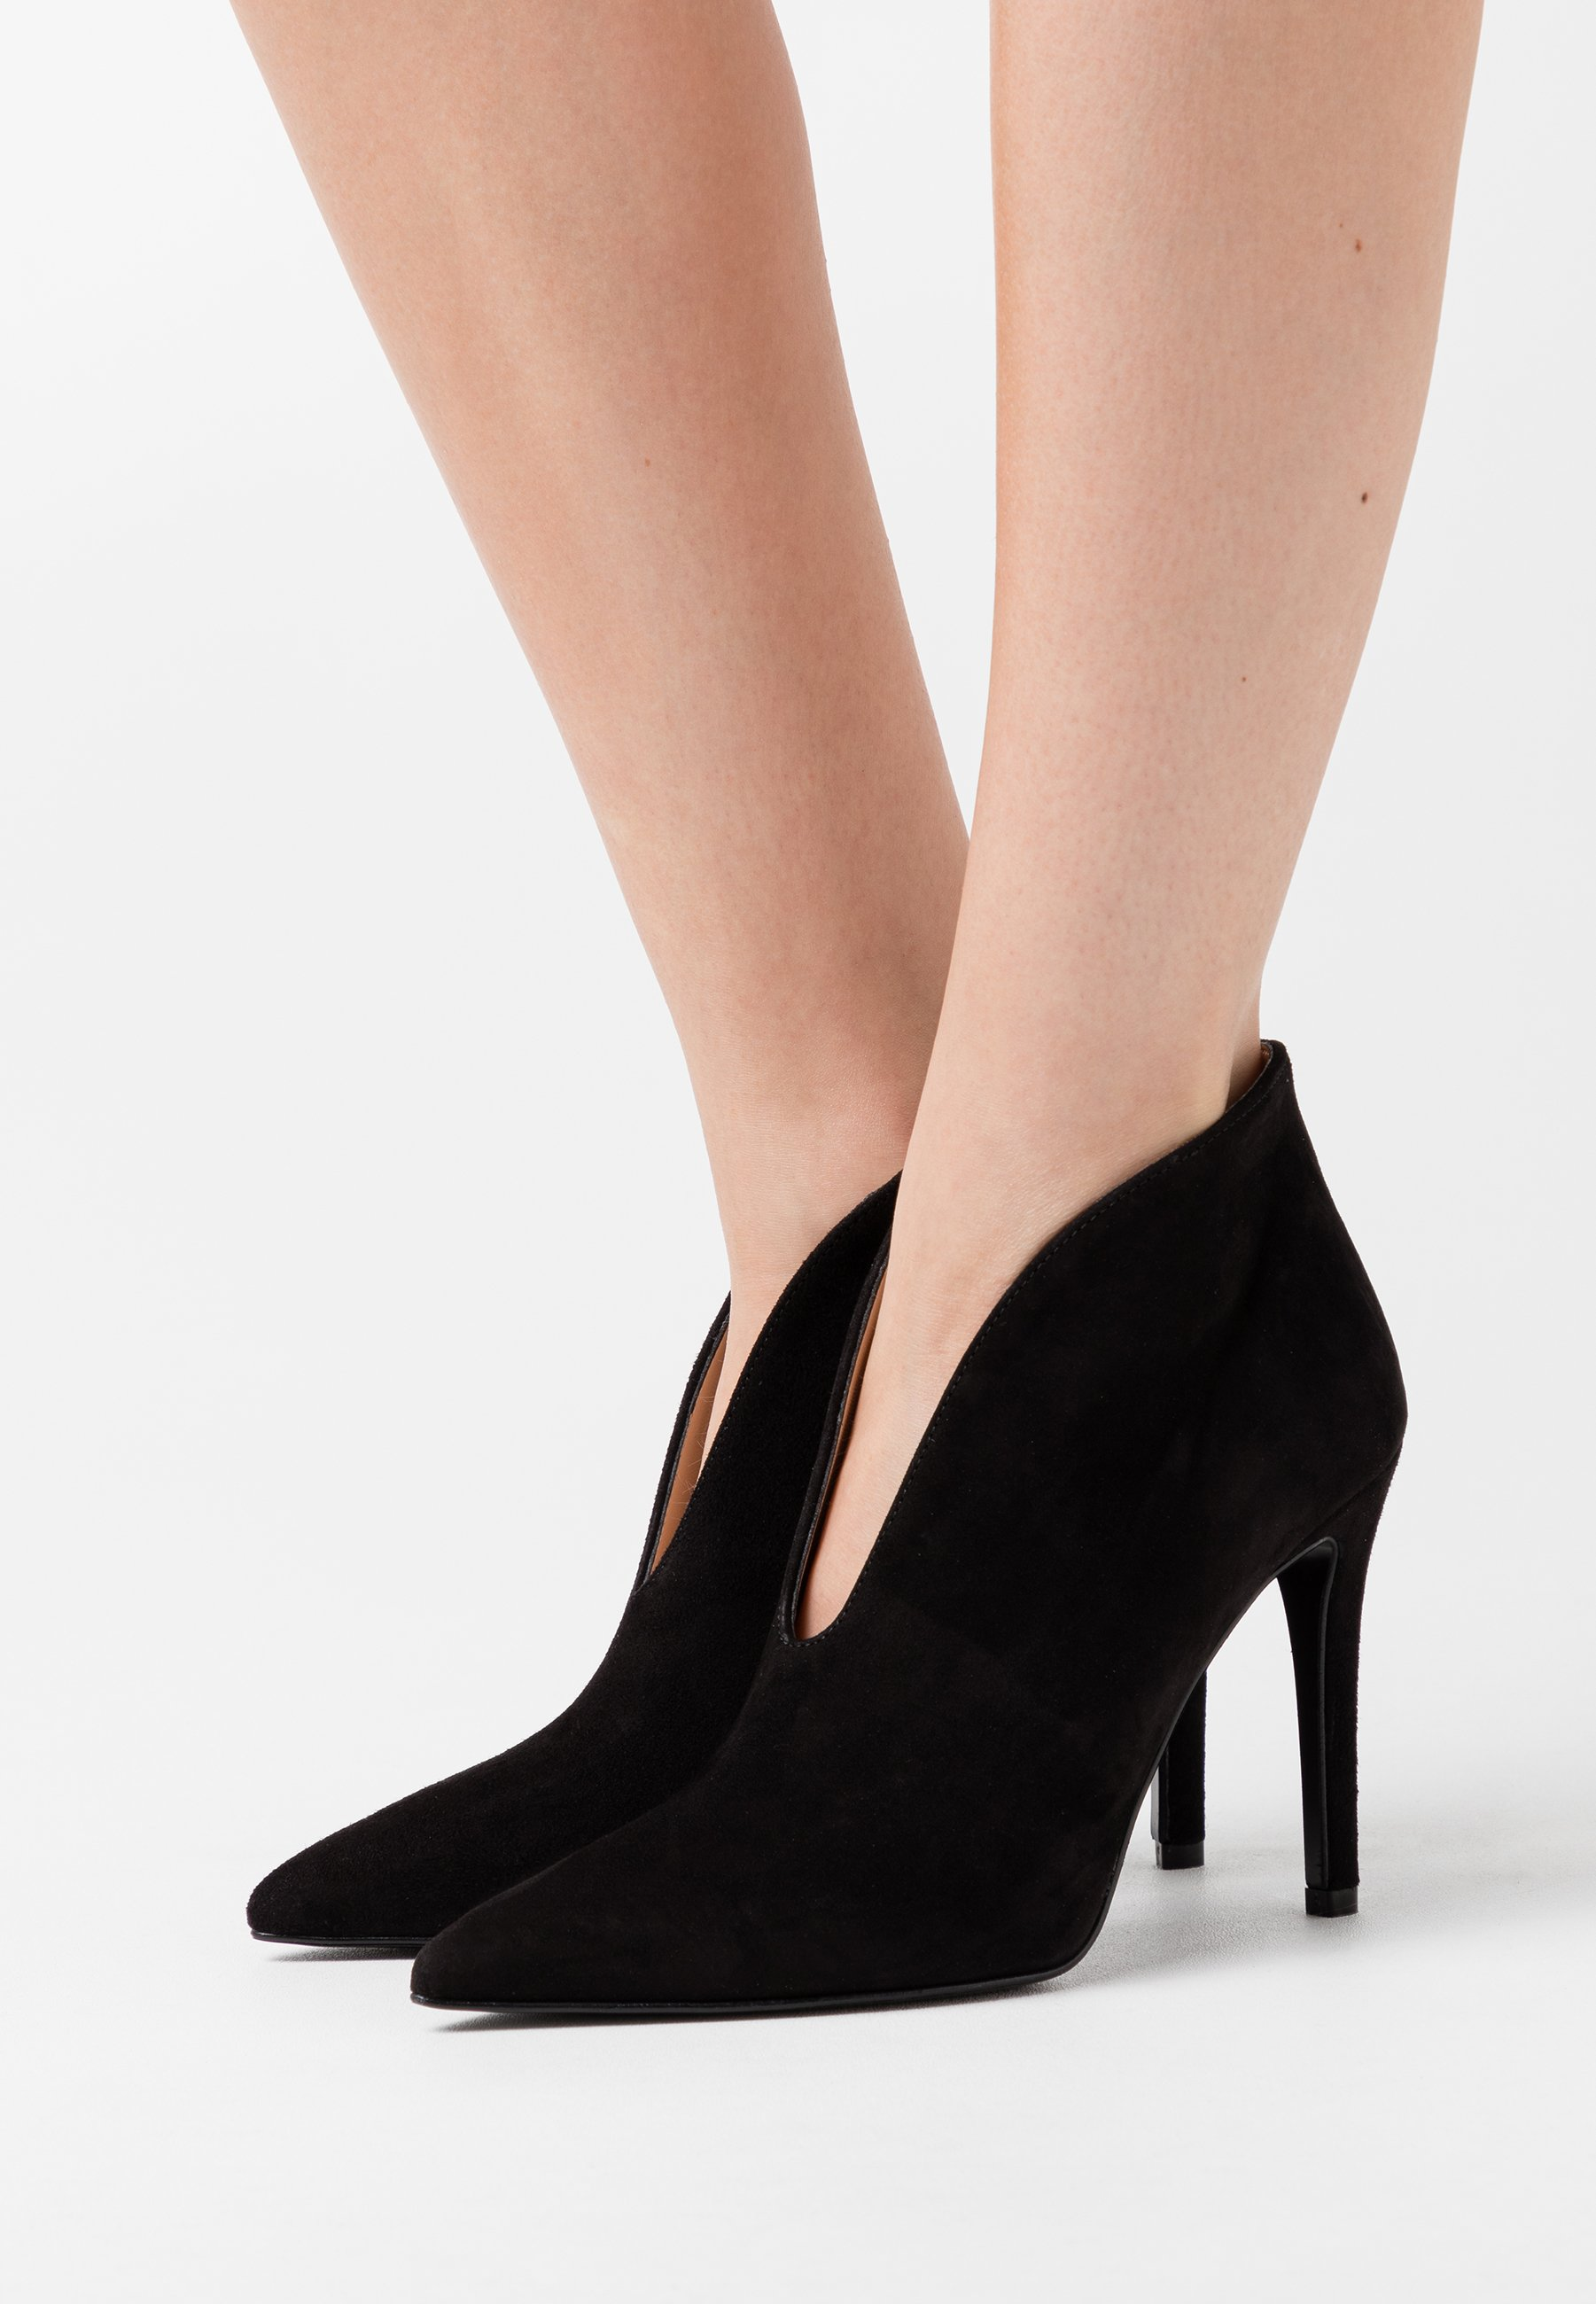 Wholesale Women's Shoes Bianca Di High heeled ankle boots nero ia4nqDTLd